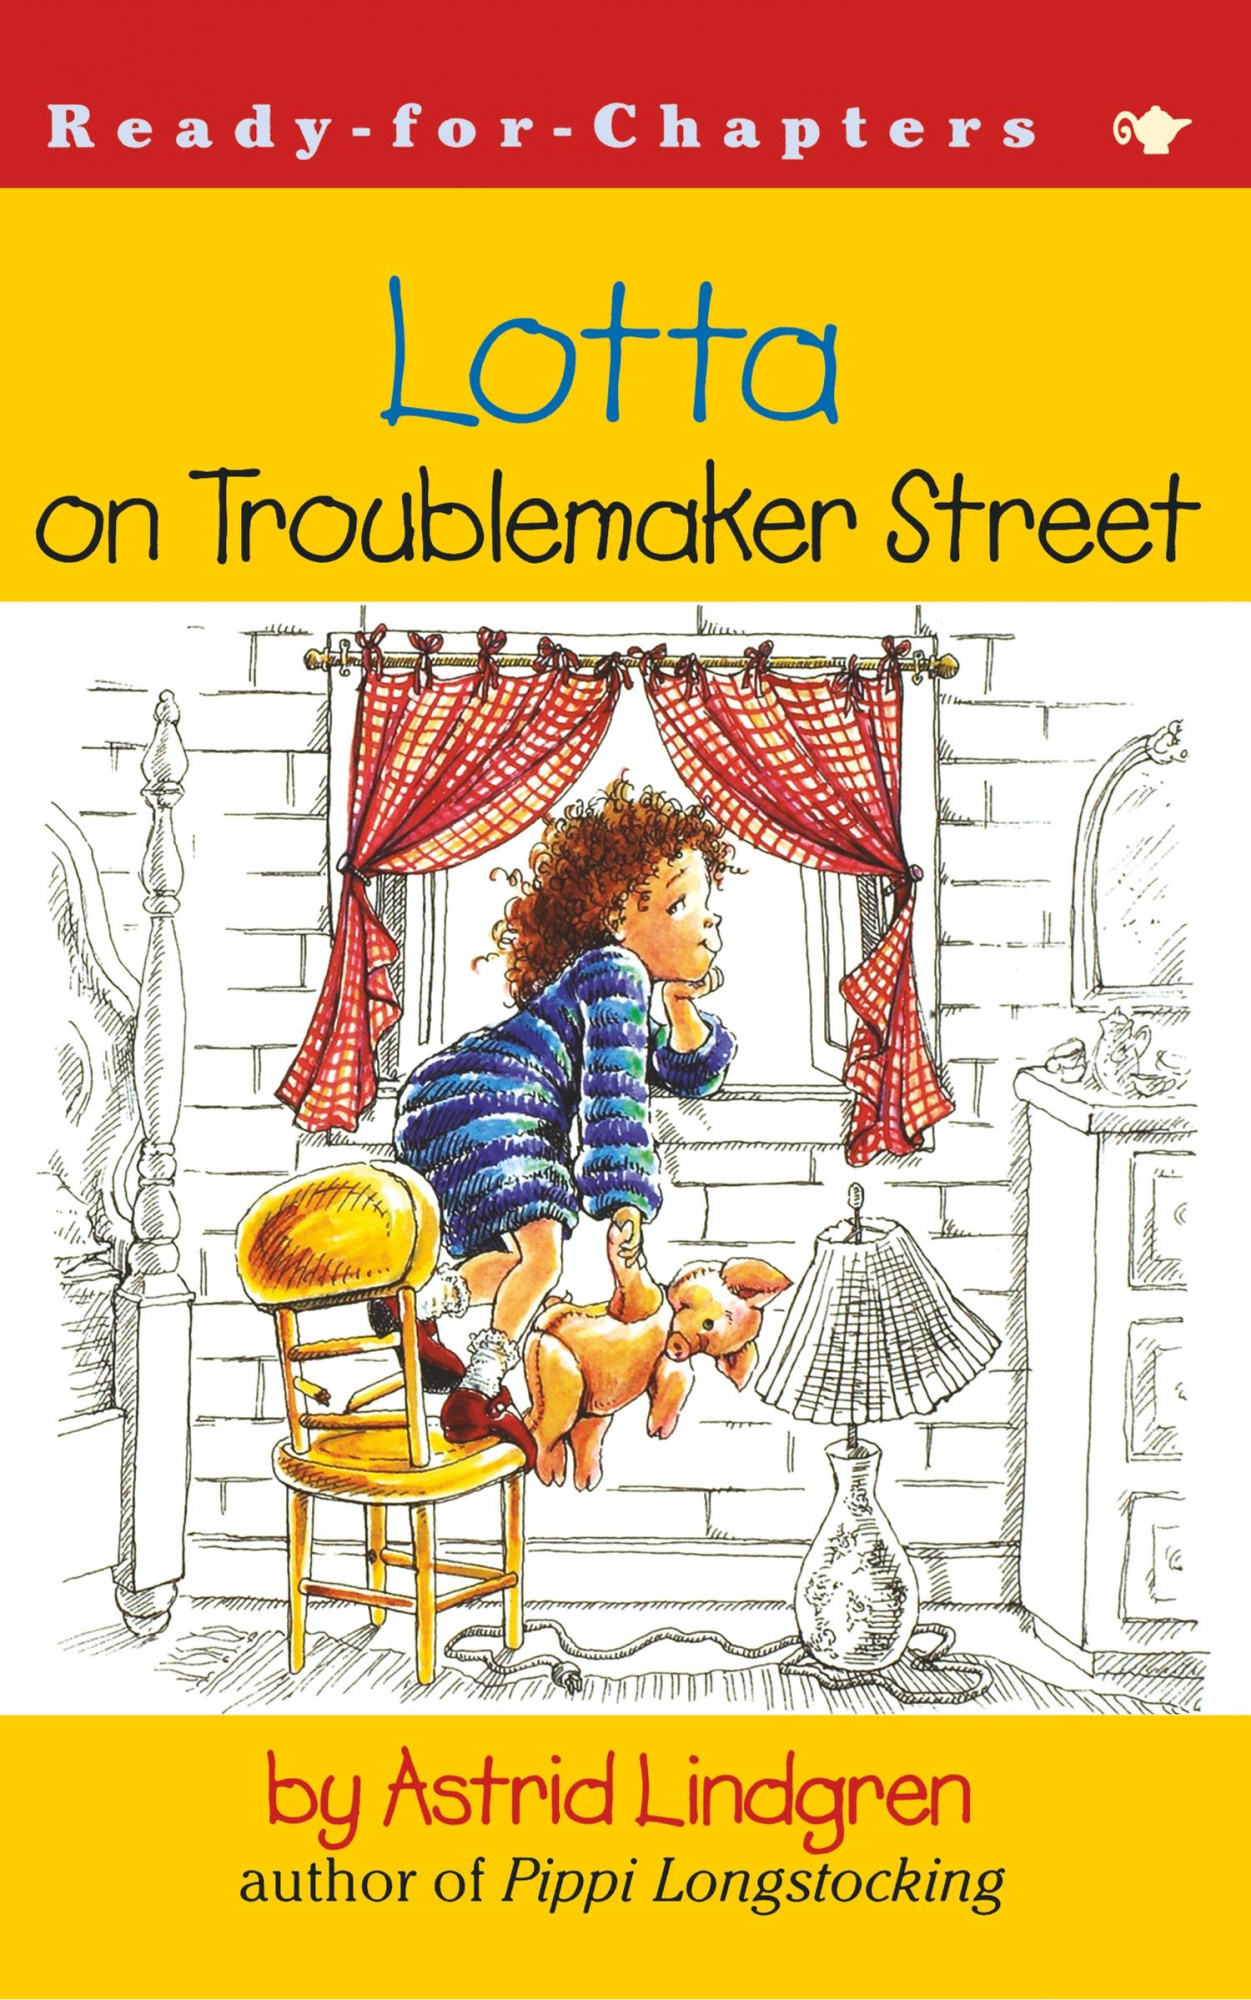 Lotta on Troublemaker Street by Astrid Lindgren, ISBN: 9780689846731